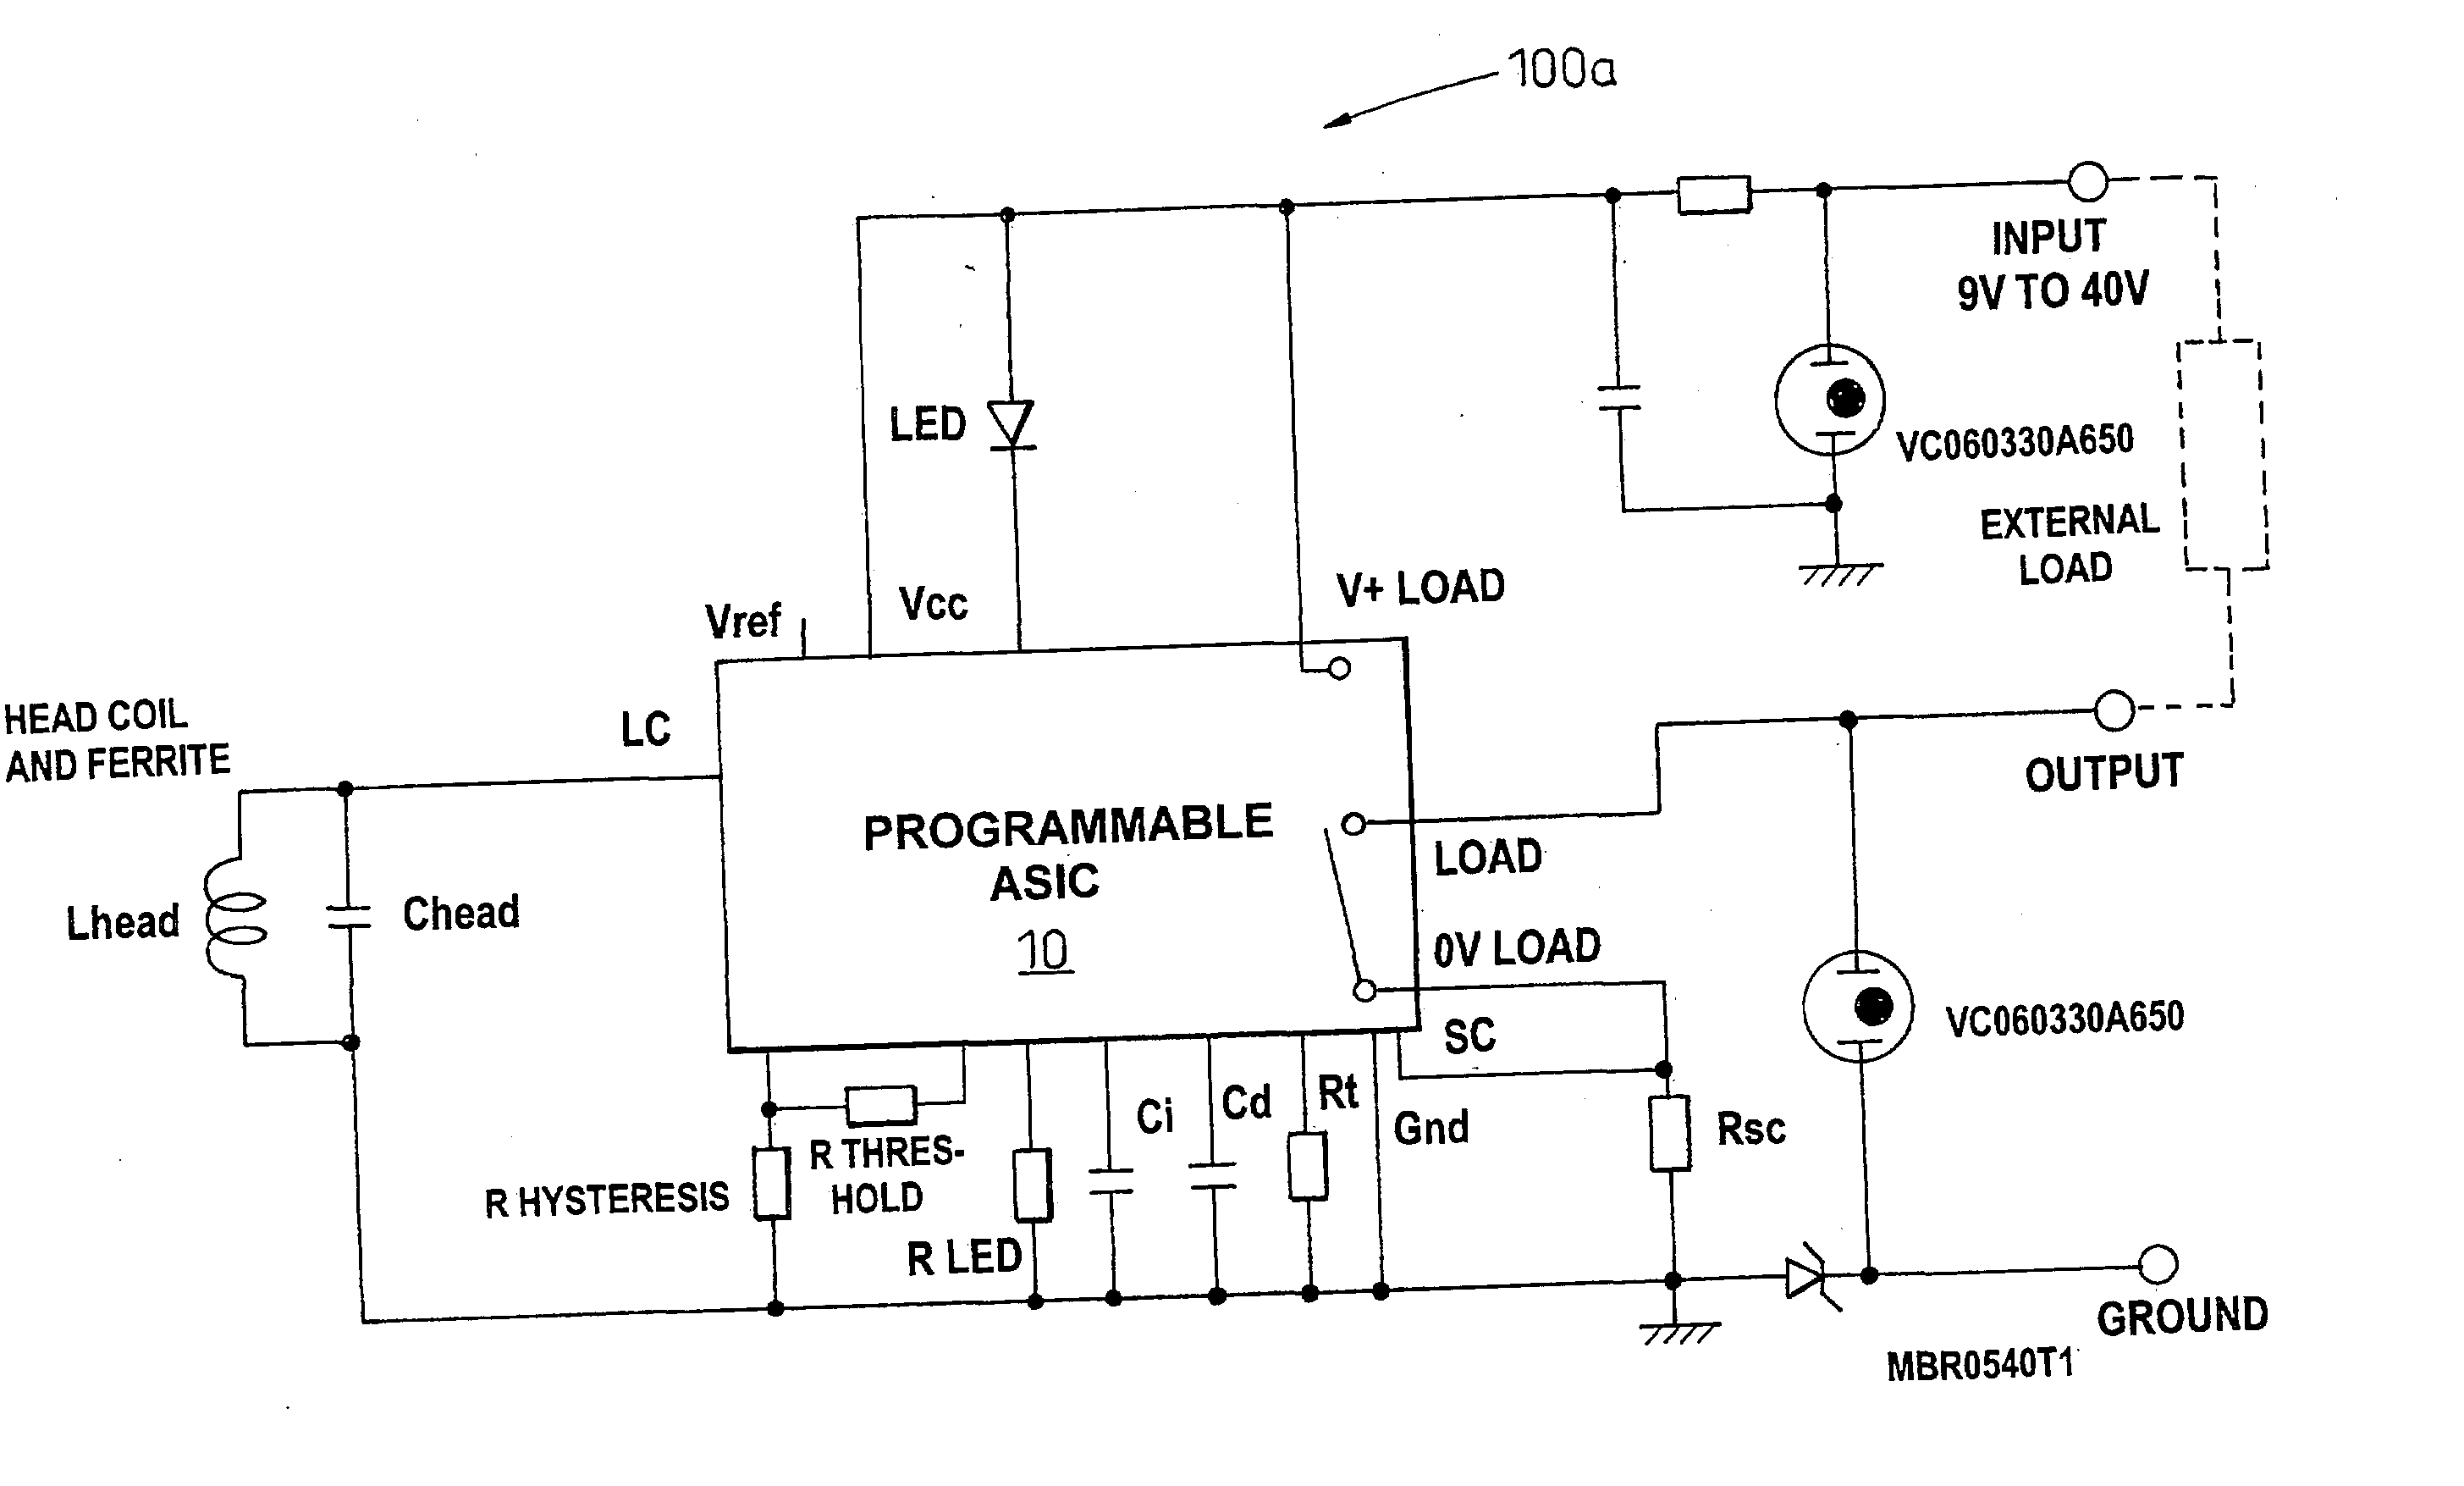 Wiring Diagram For Digital Proximity Sensors 44 Inductive Switch 3 Wire Us20030164697a1 20030904 D00000 Patent Us20030164697 Sensor And Related At Highcare